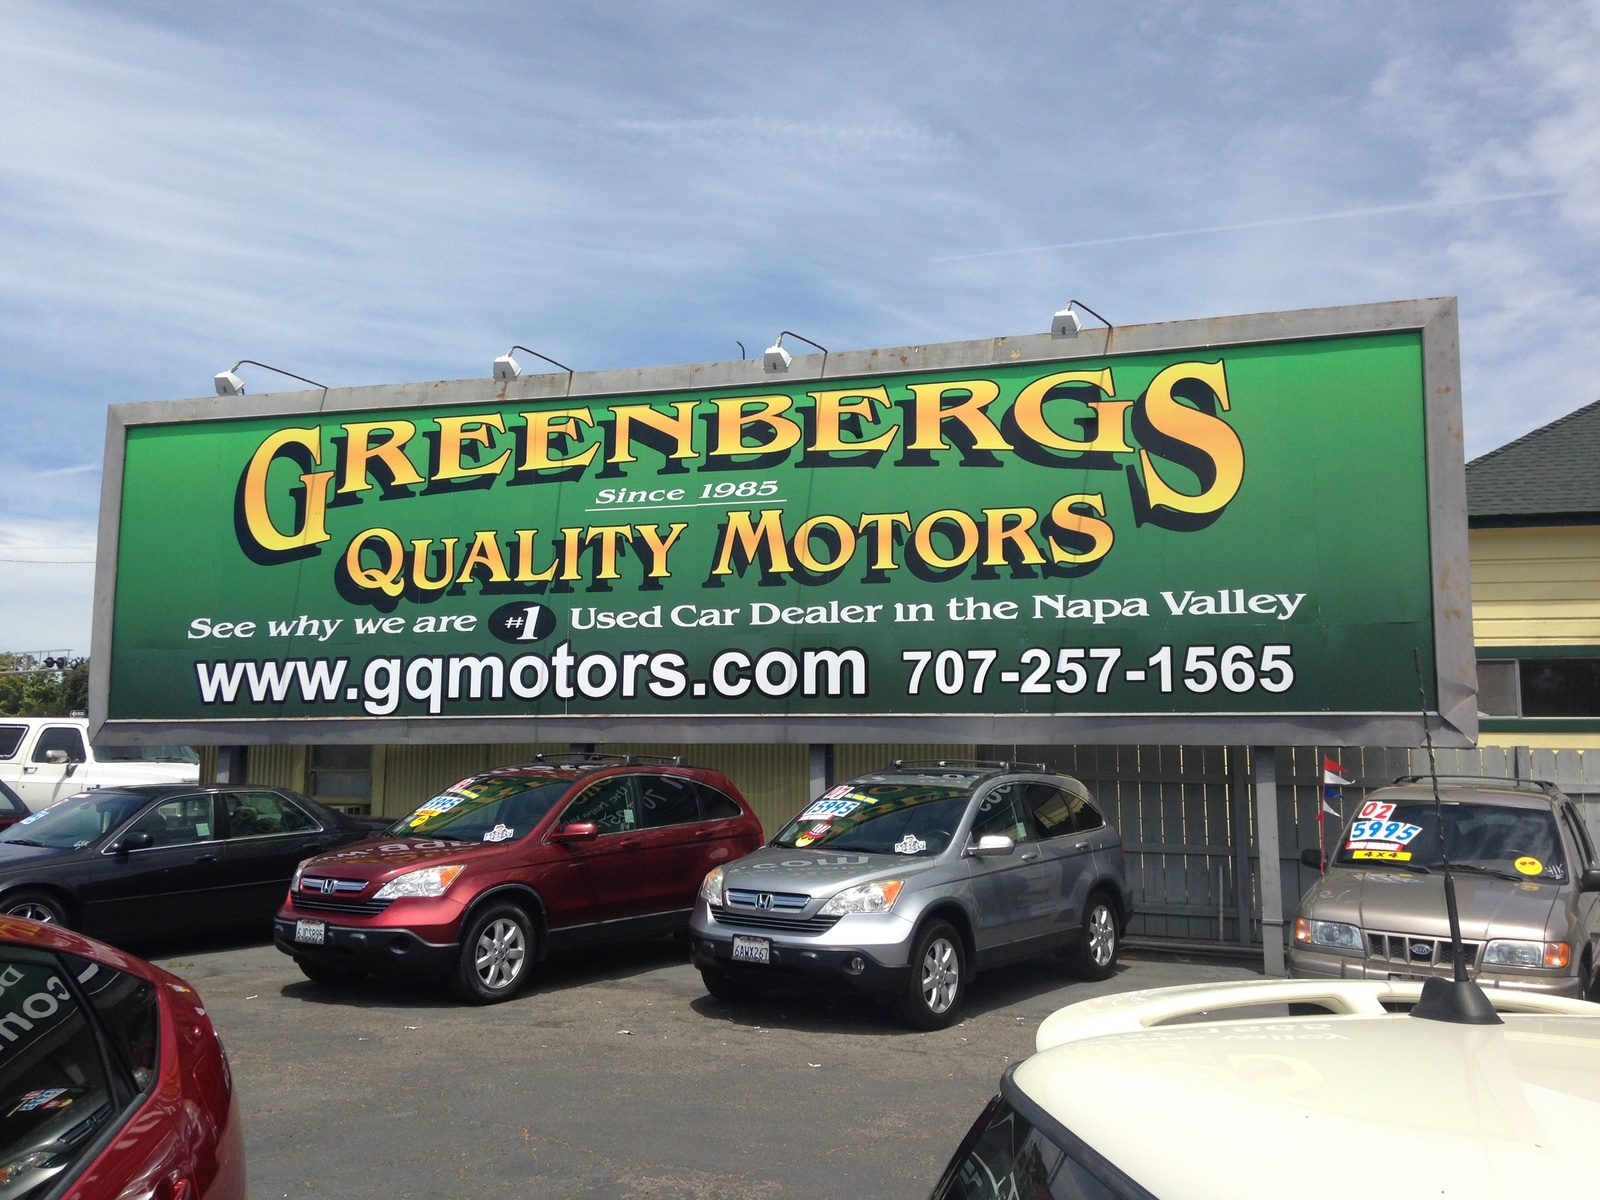 Greenbergs Quality Motors - Napa, CA: Read Consumer reviews, Browse Used and New Cars for Sale